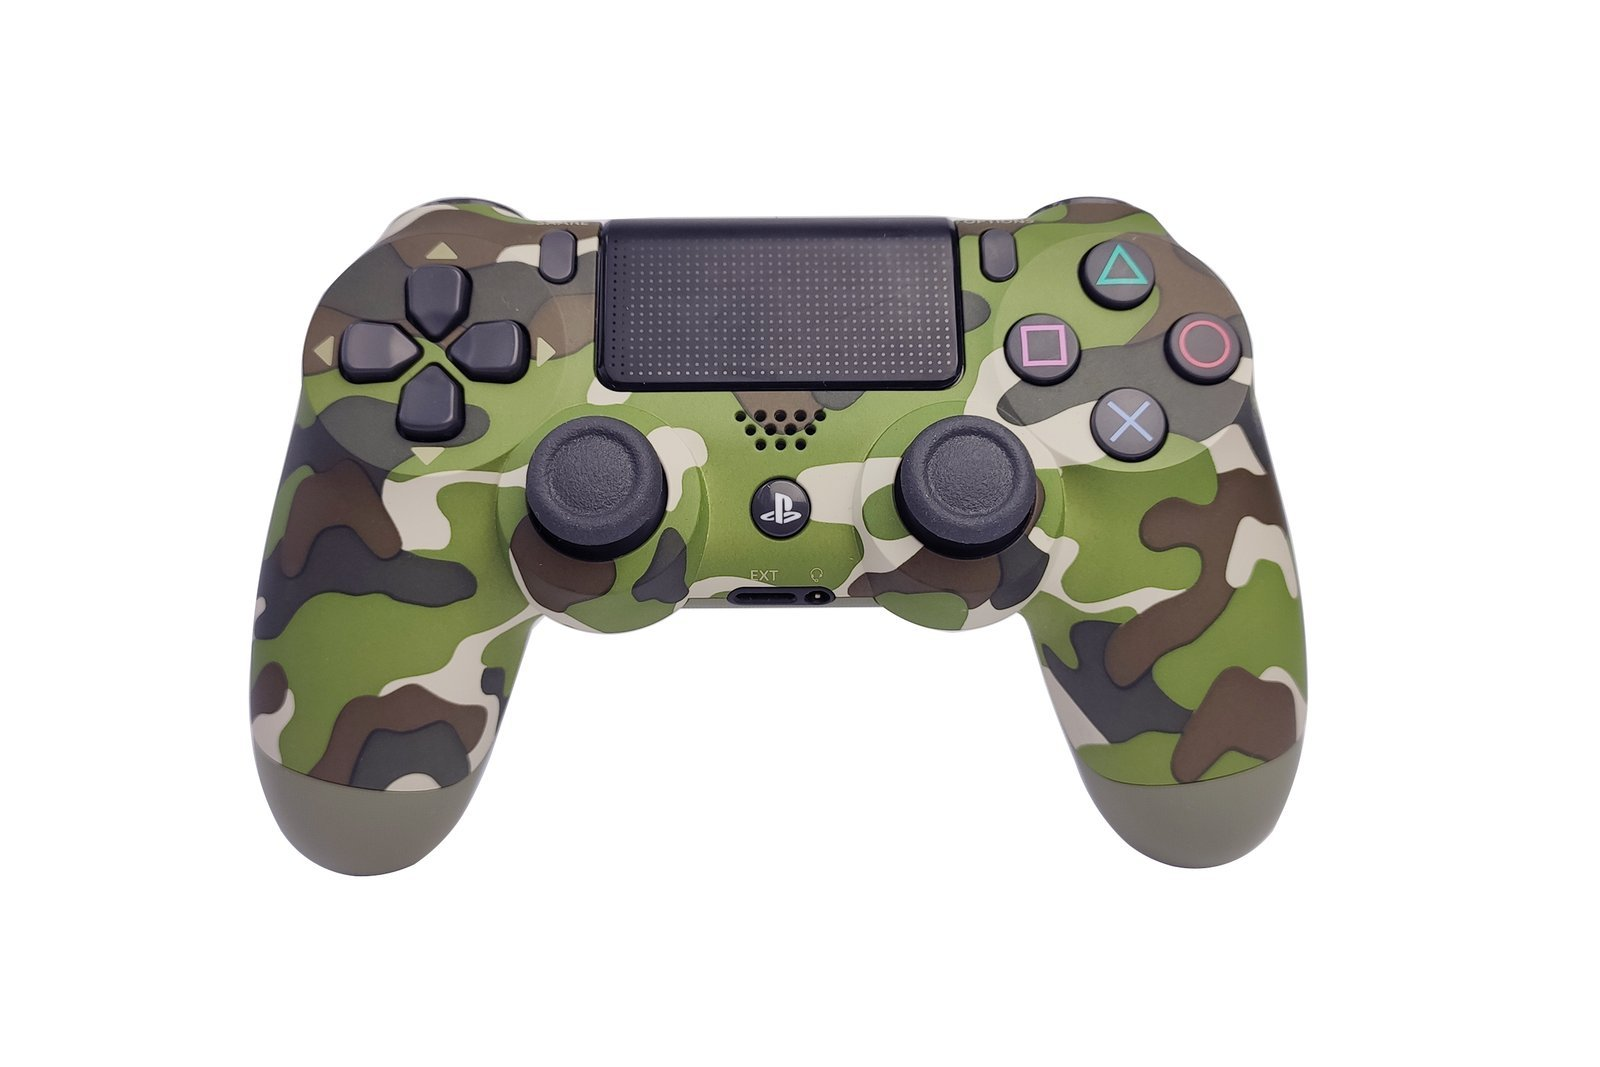 Controller Gamepad Playstation 4 PS4 v2 Green Camouflage